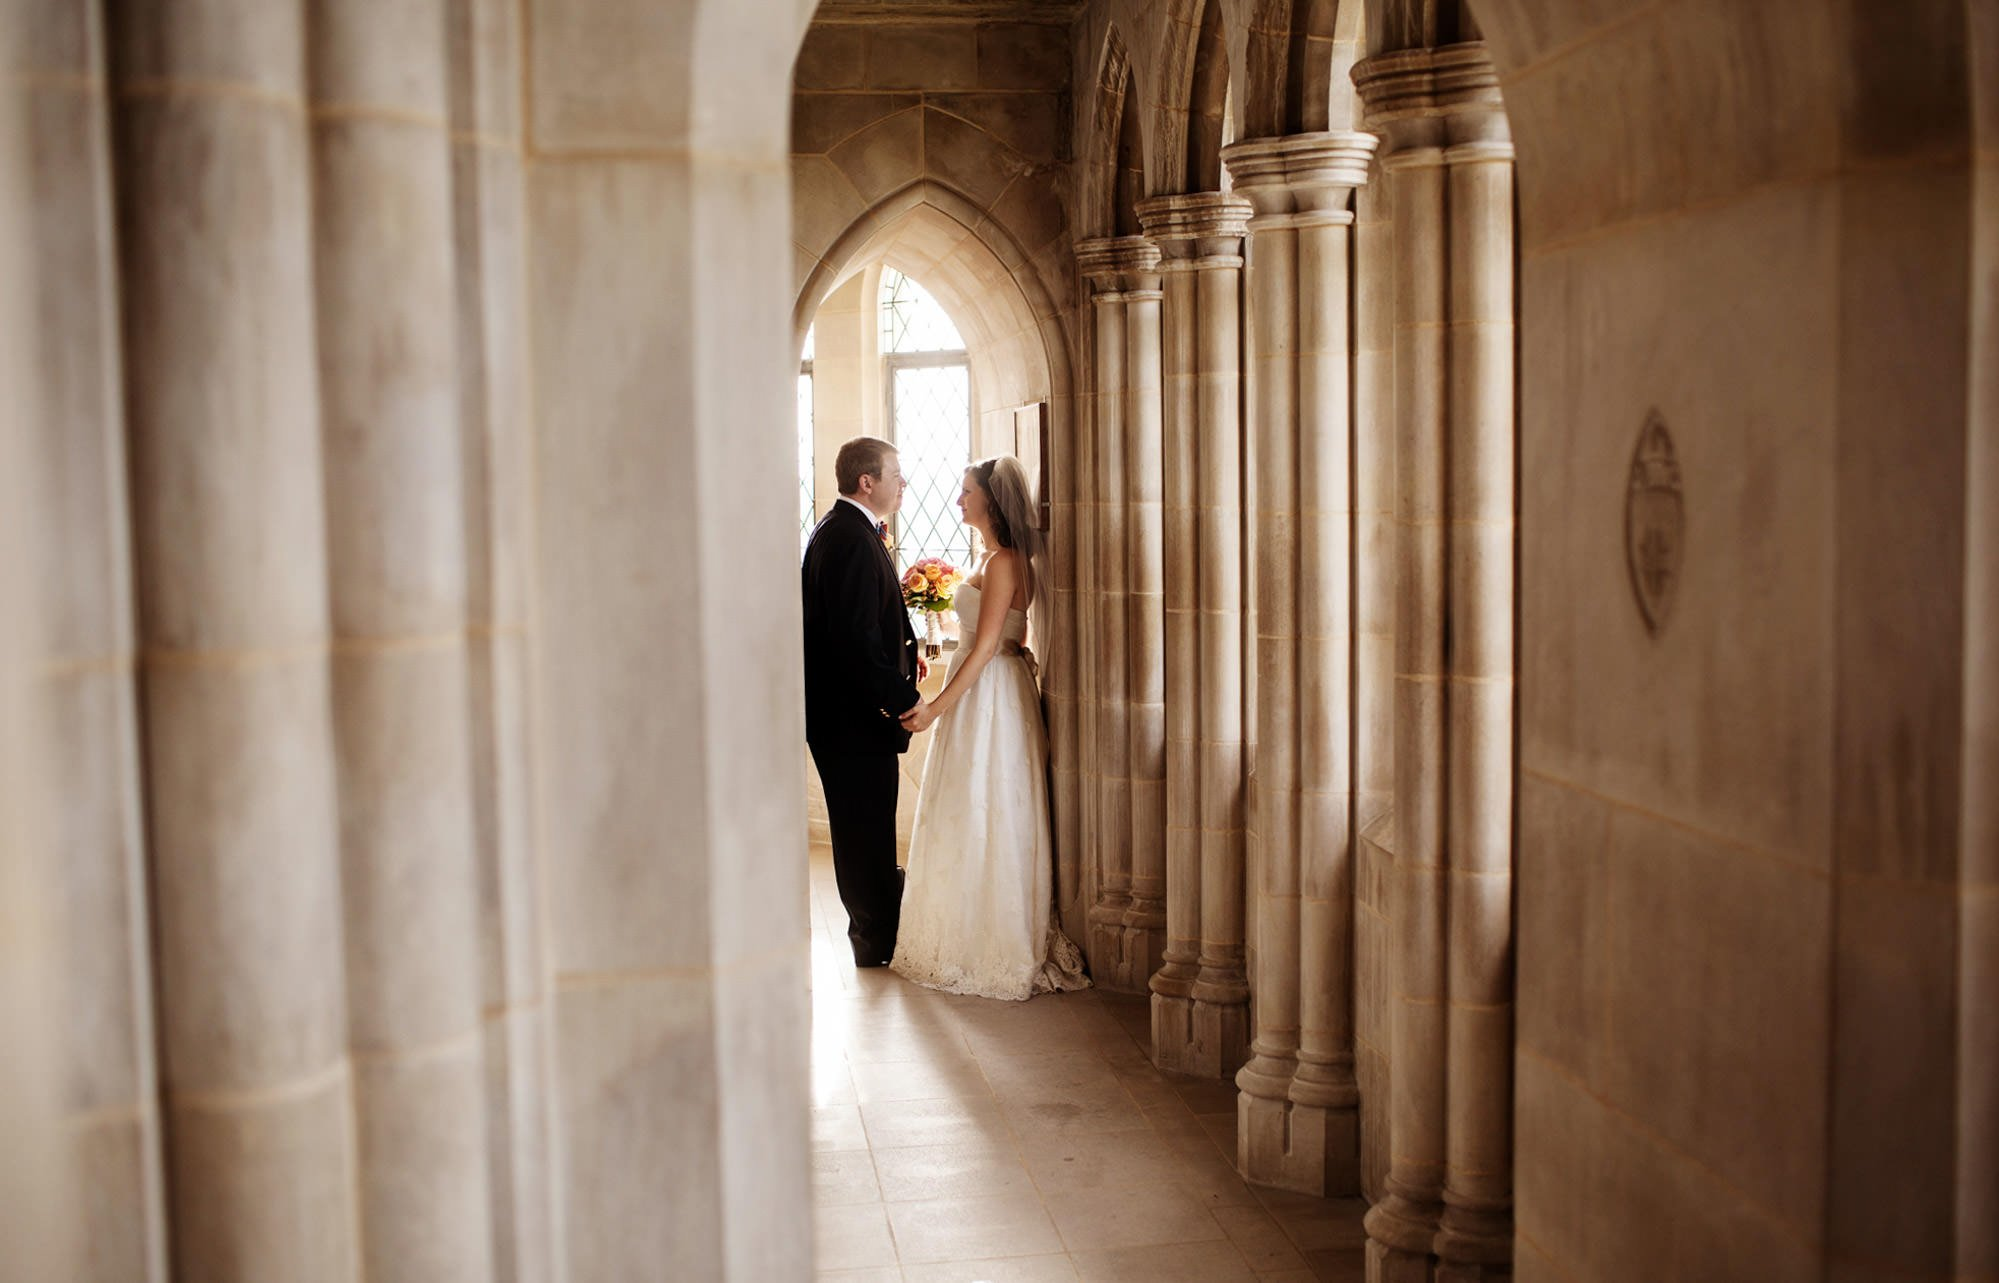 Washington National Cathedral Wedding  I  The bride and groom stand in the Observation Deck of the Washington National Cathedral following their wedding ceremony.